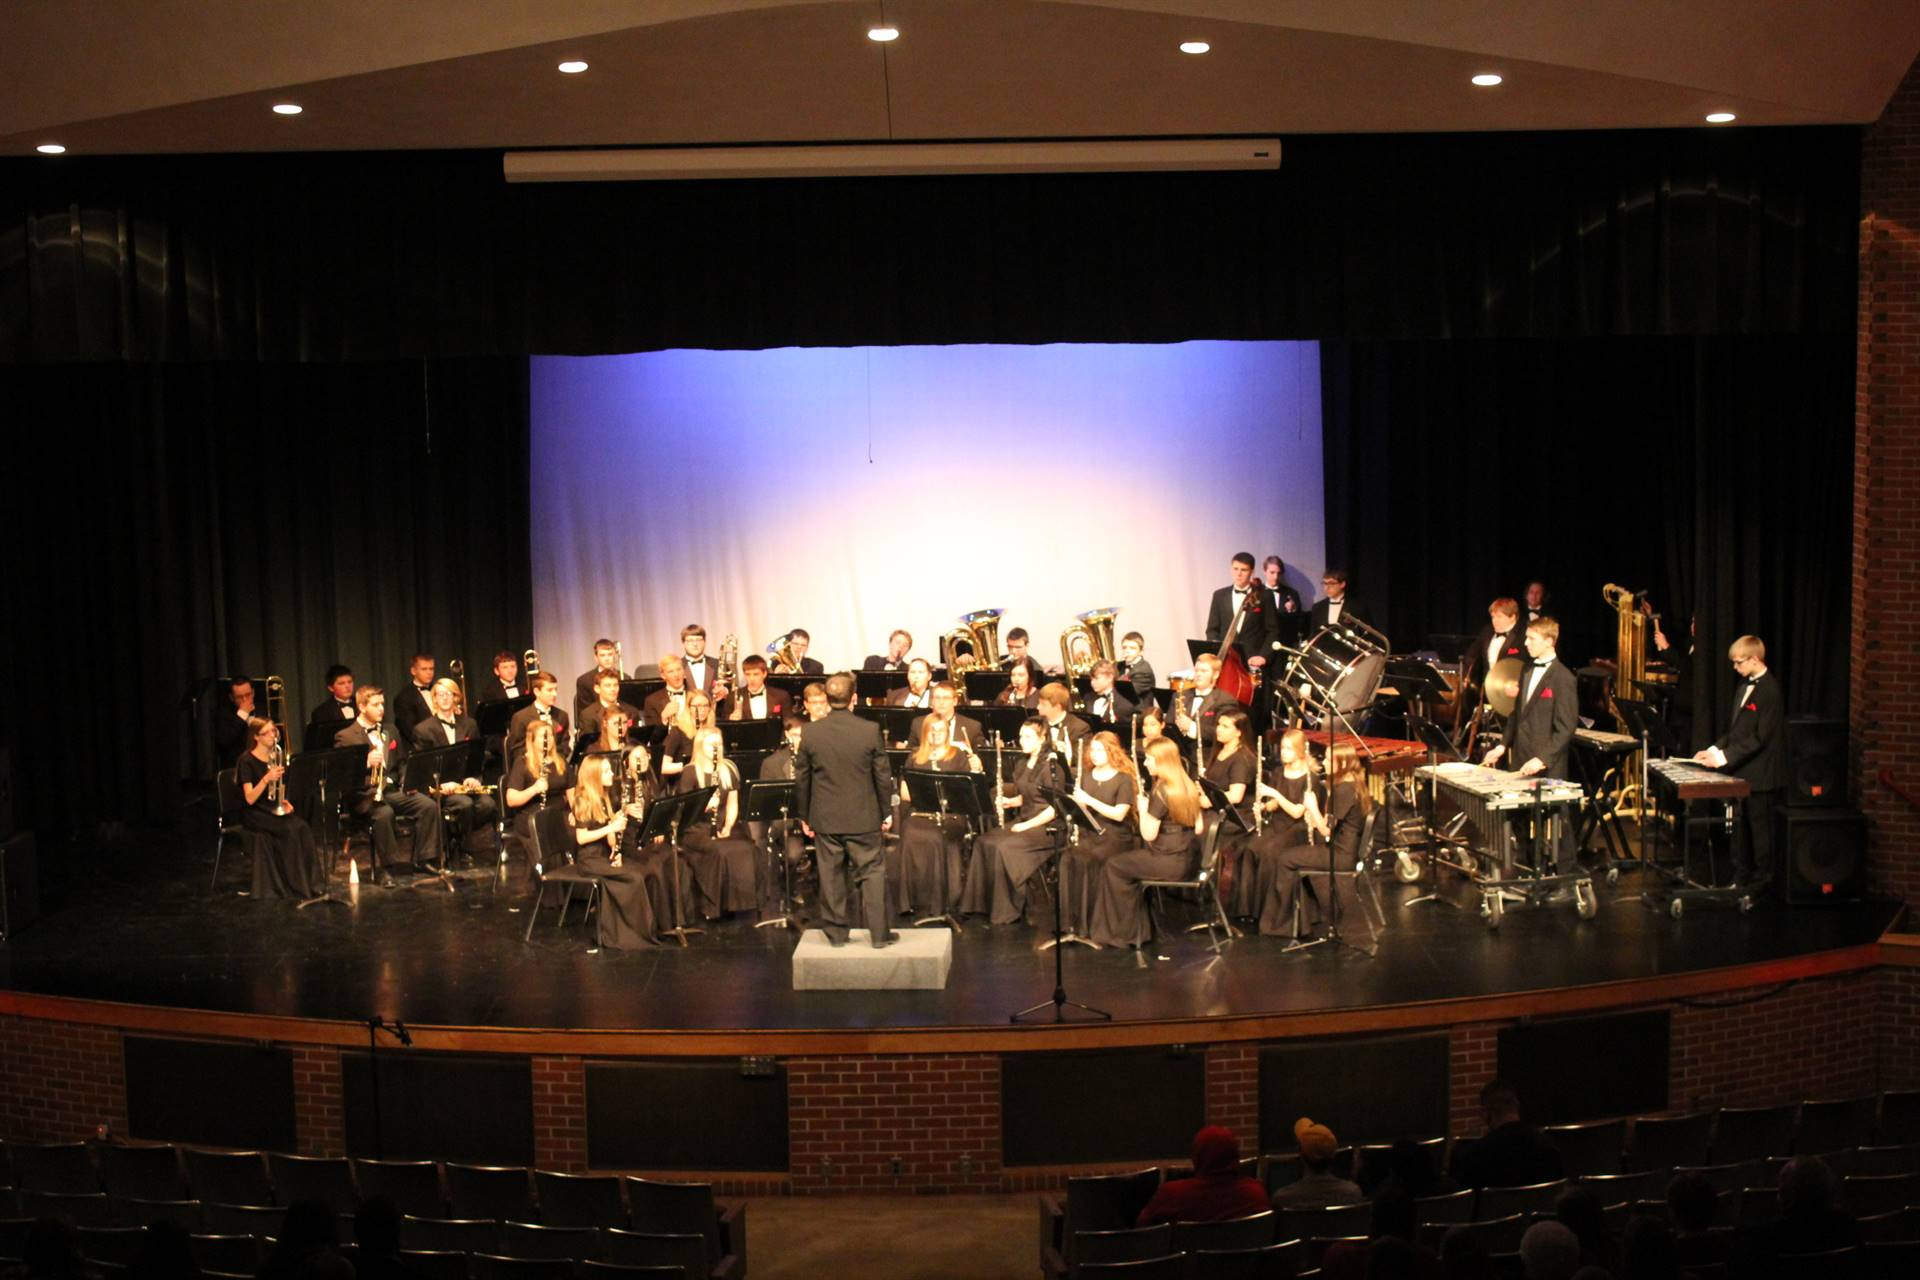 High school concert band on stage